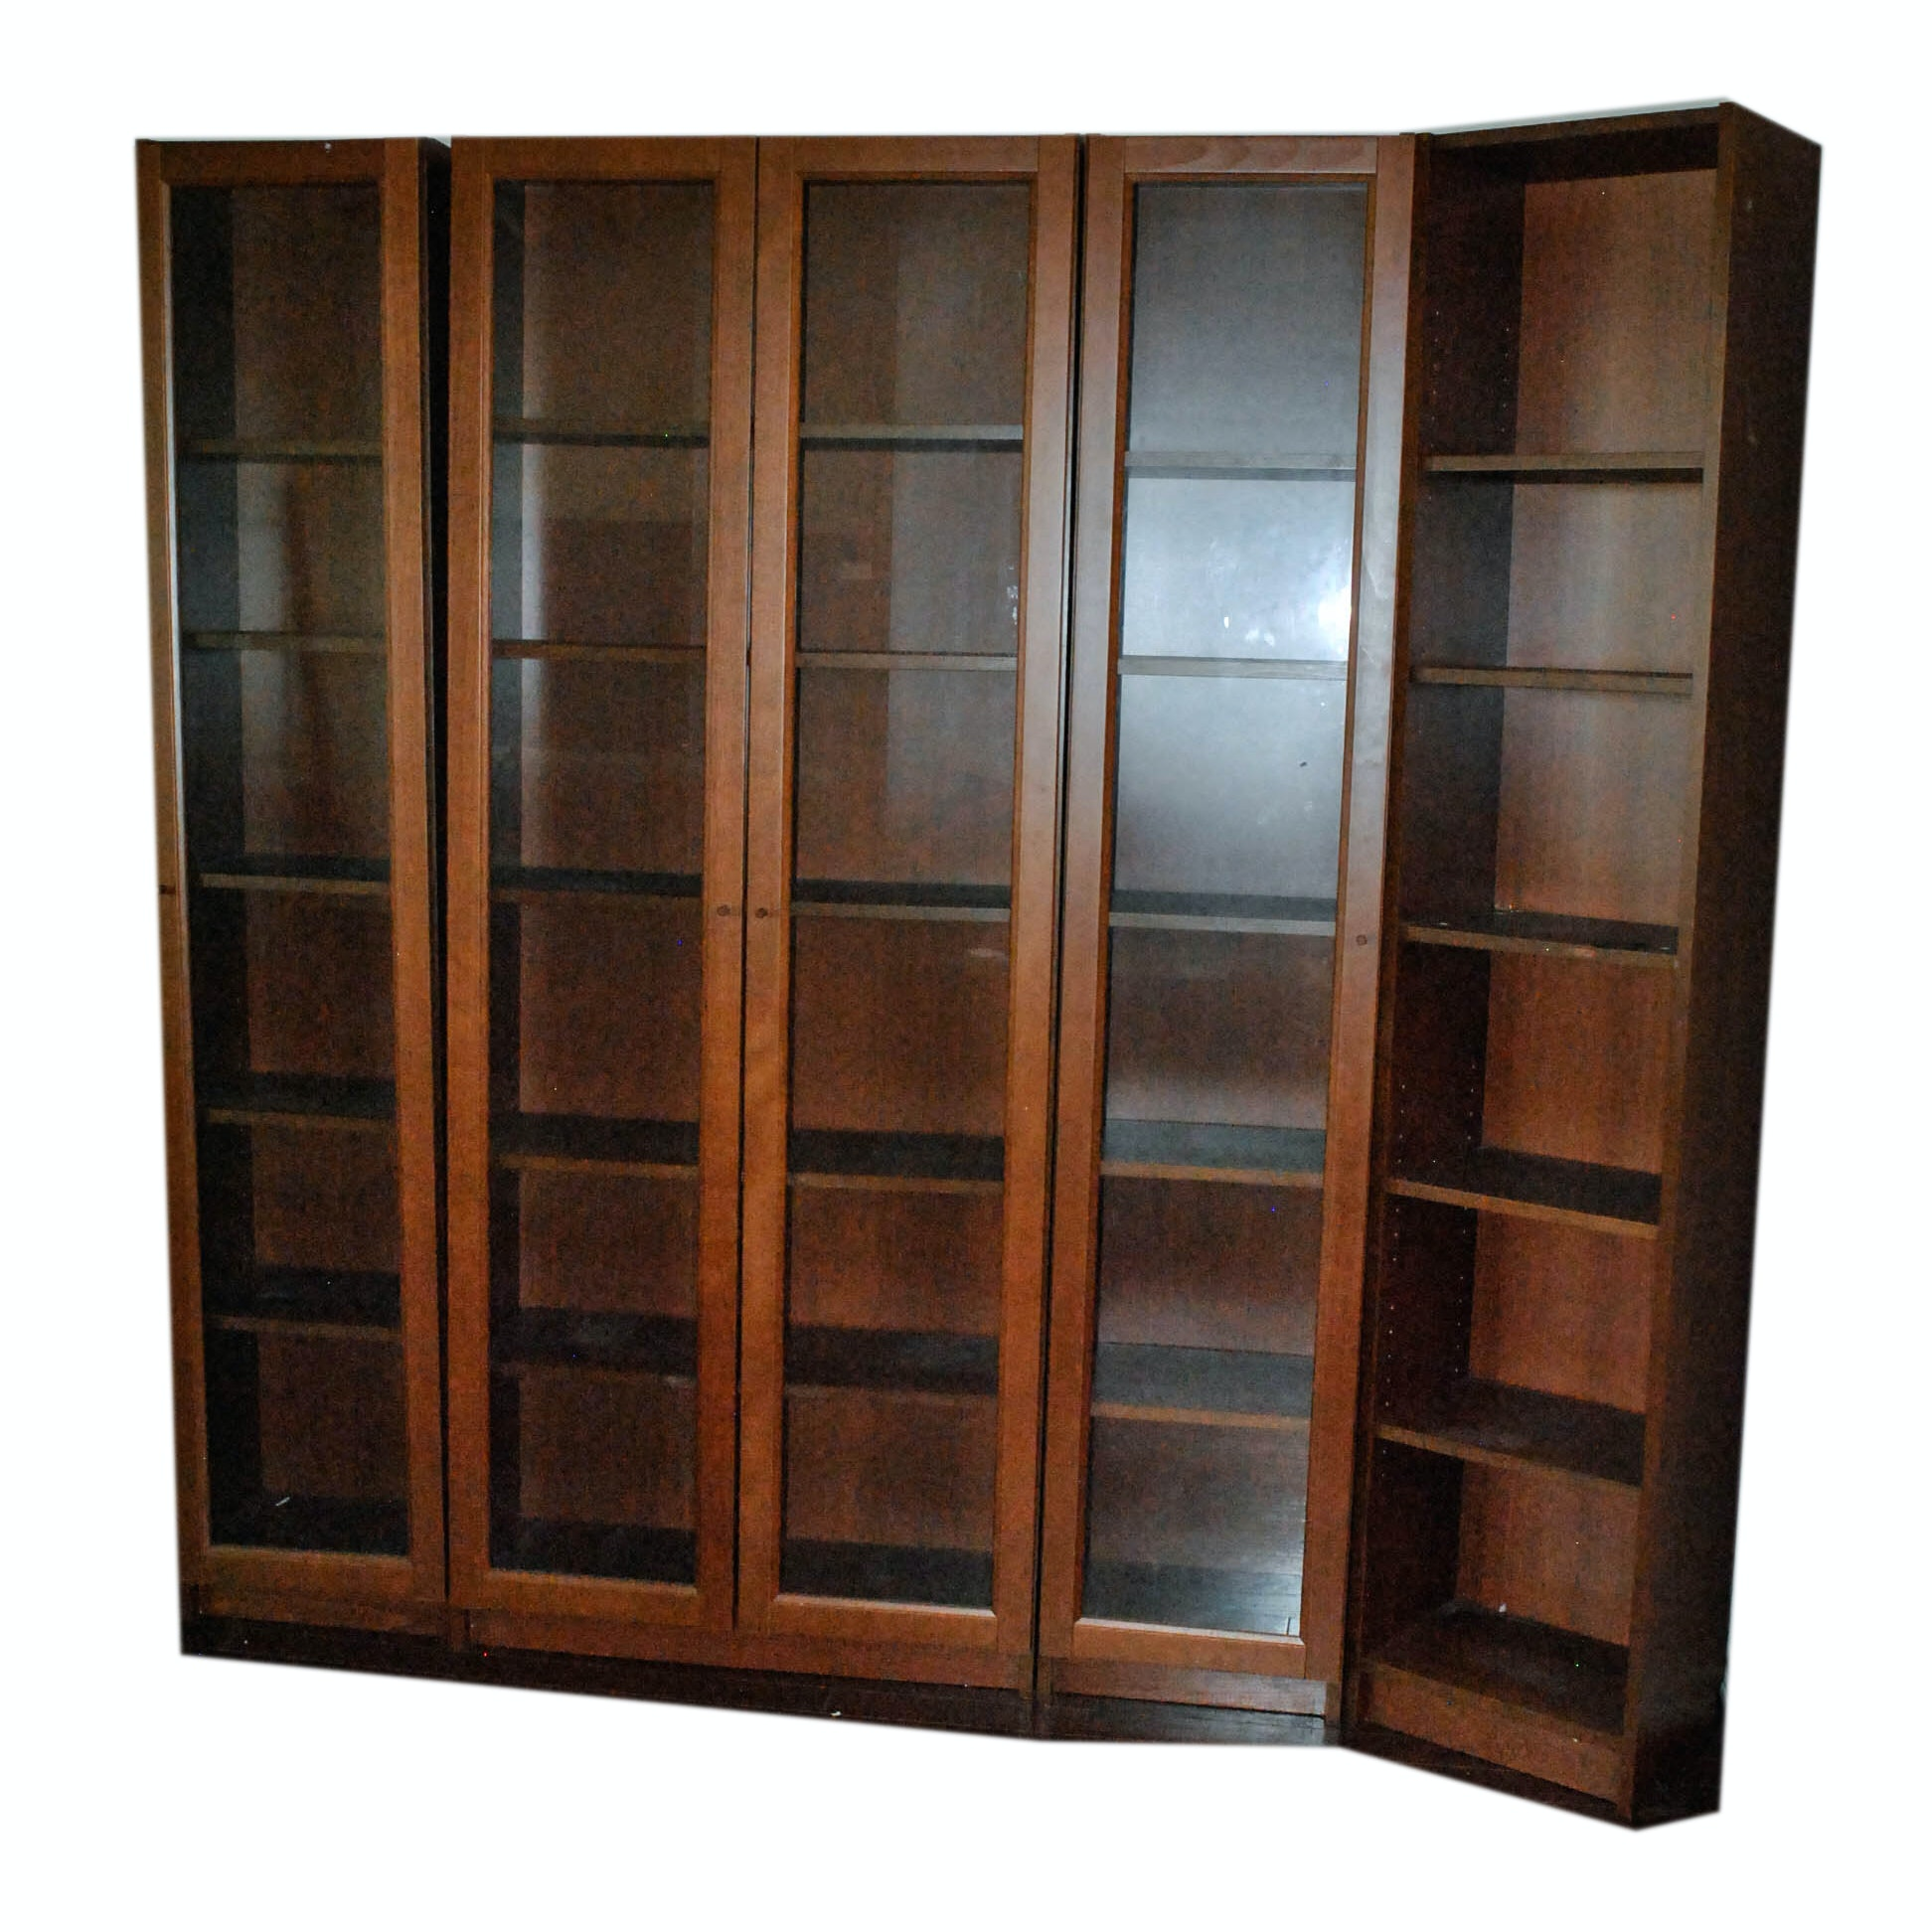 Contemporary Wood Grained Laminate Bookcases With Glass Panel Cabinet Doors